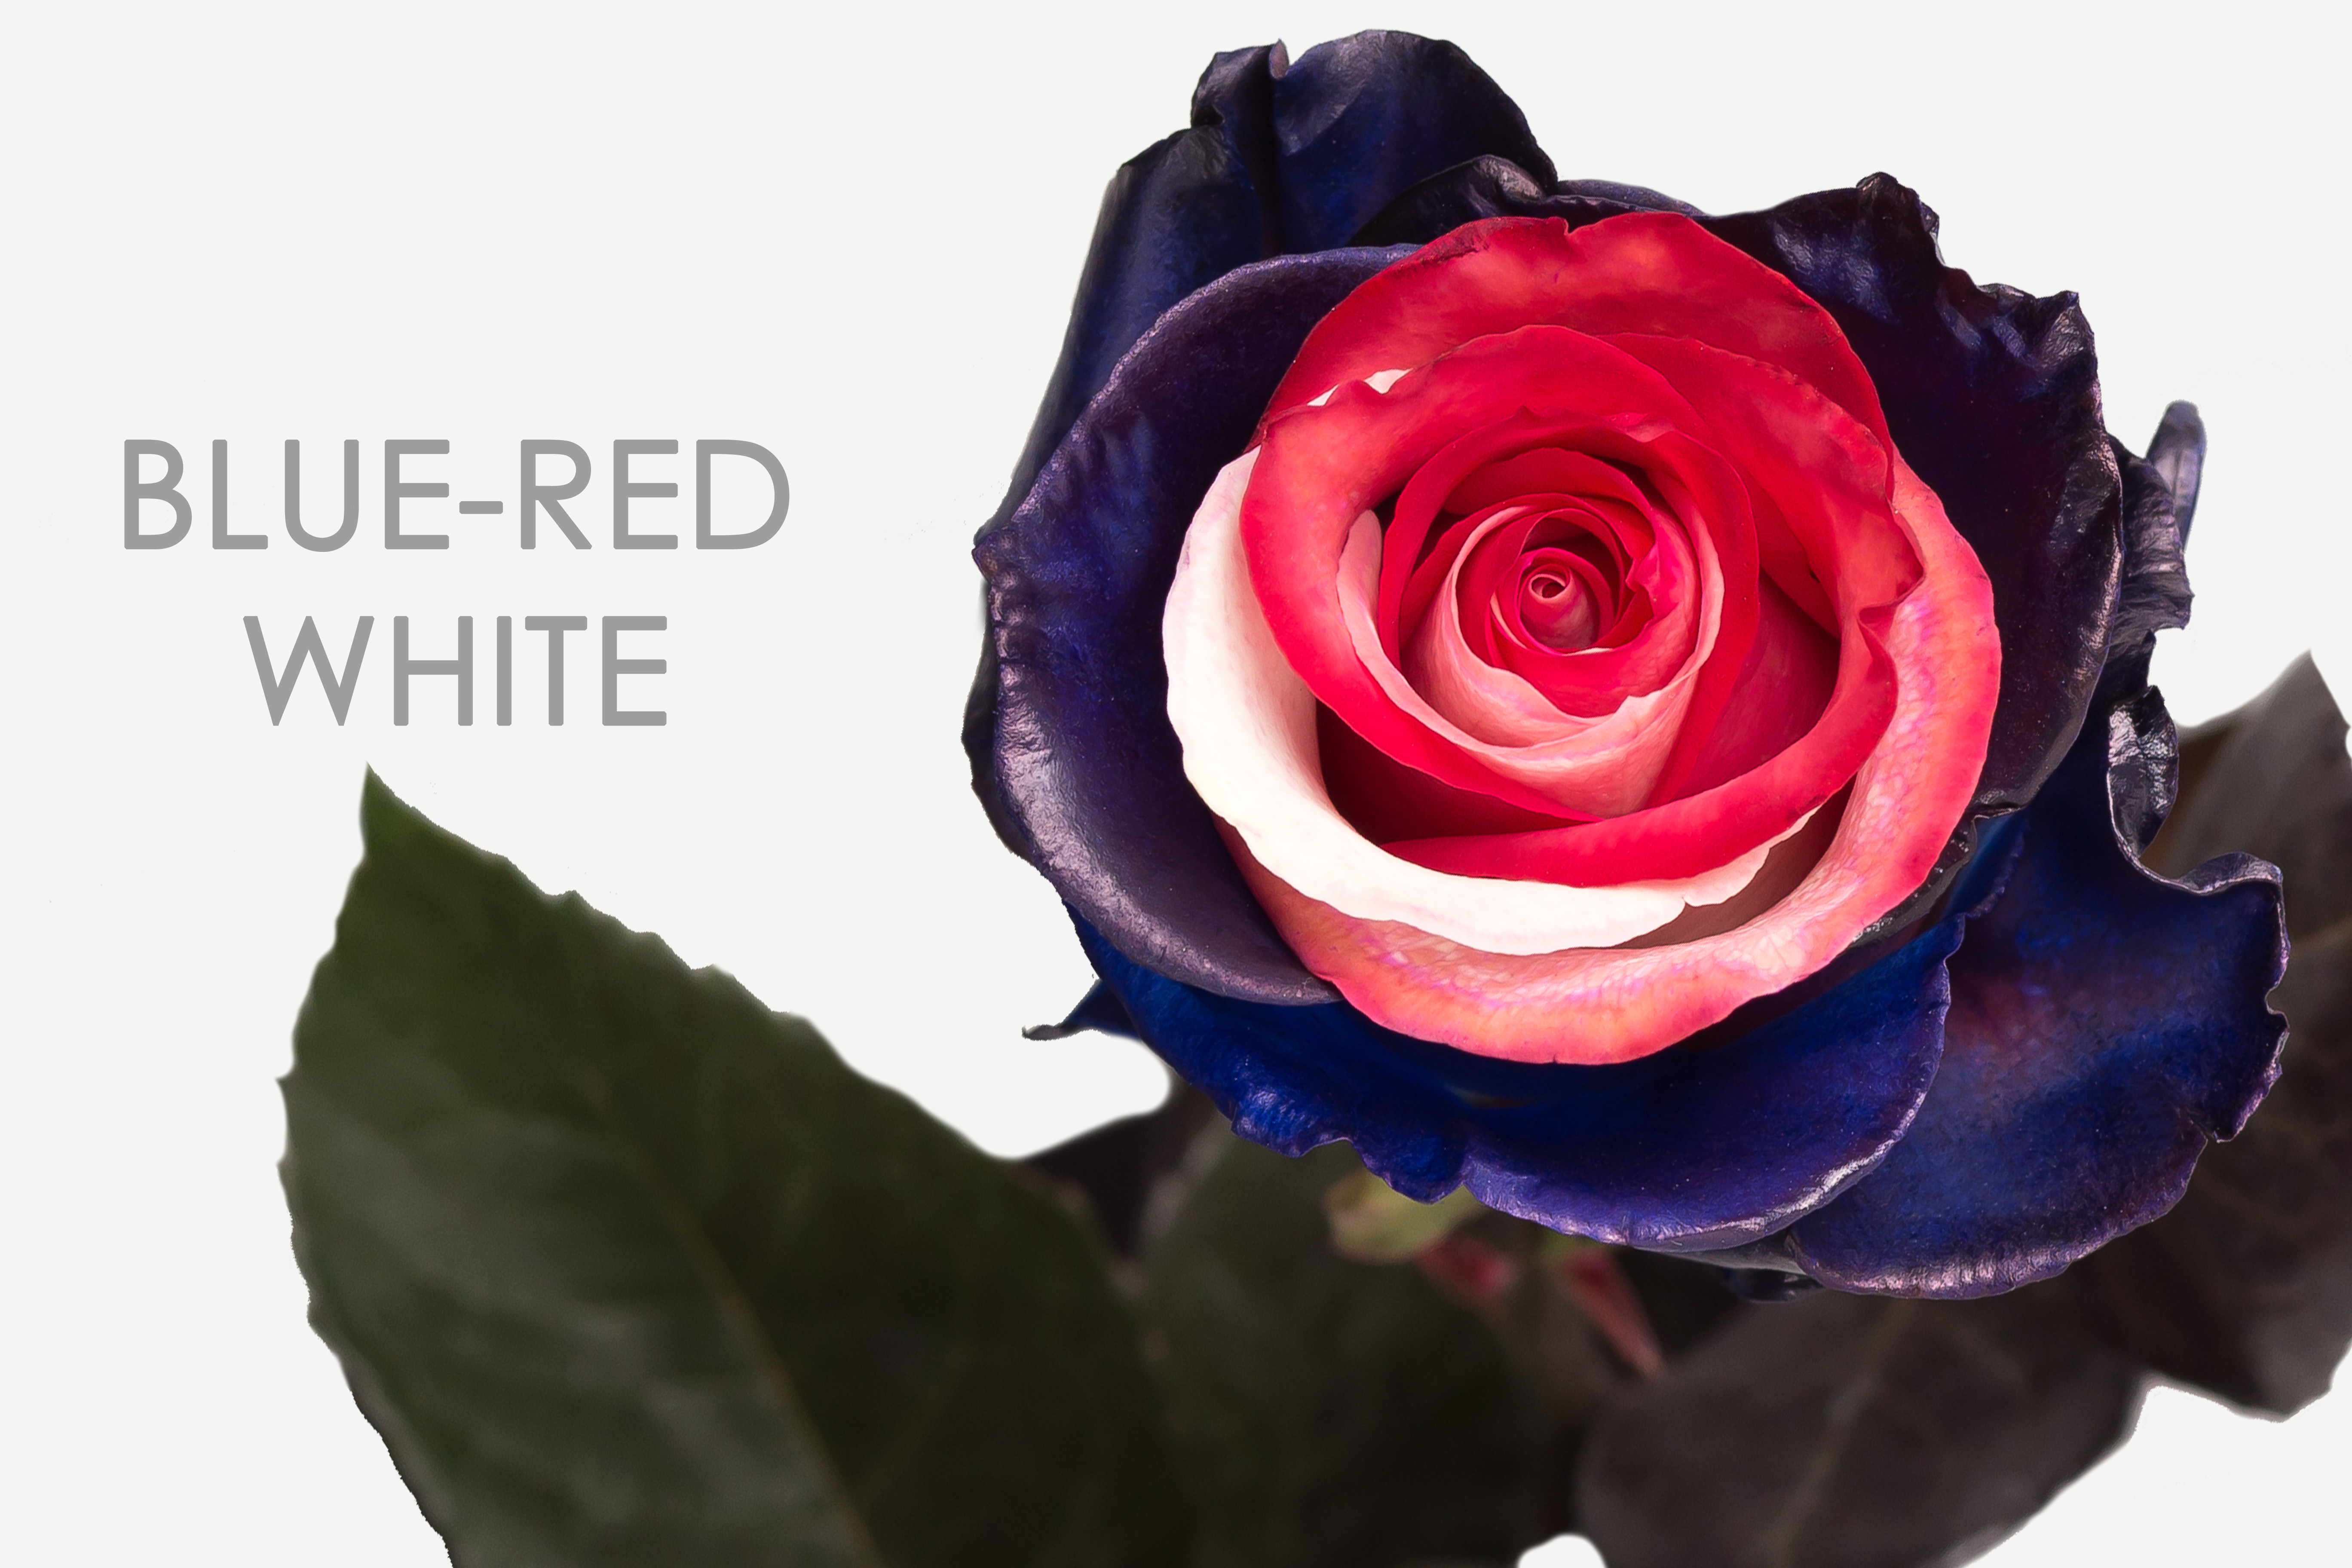 BLUE-RED-WHITE-CAPTION-UNIDAD